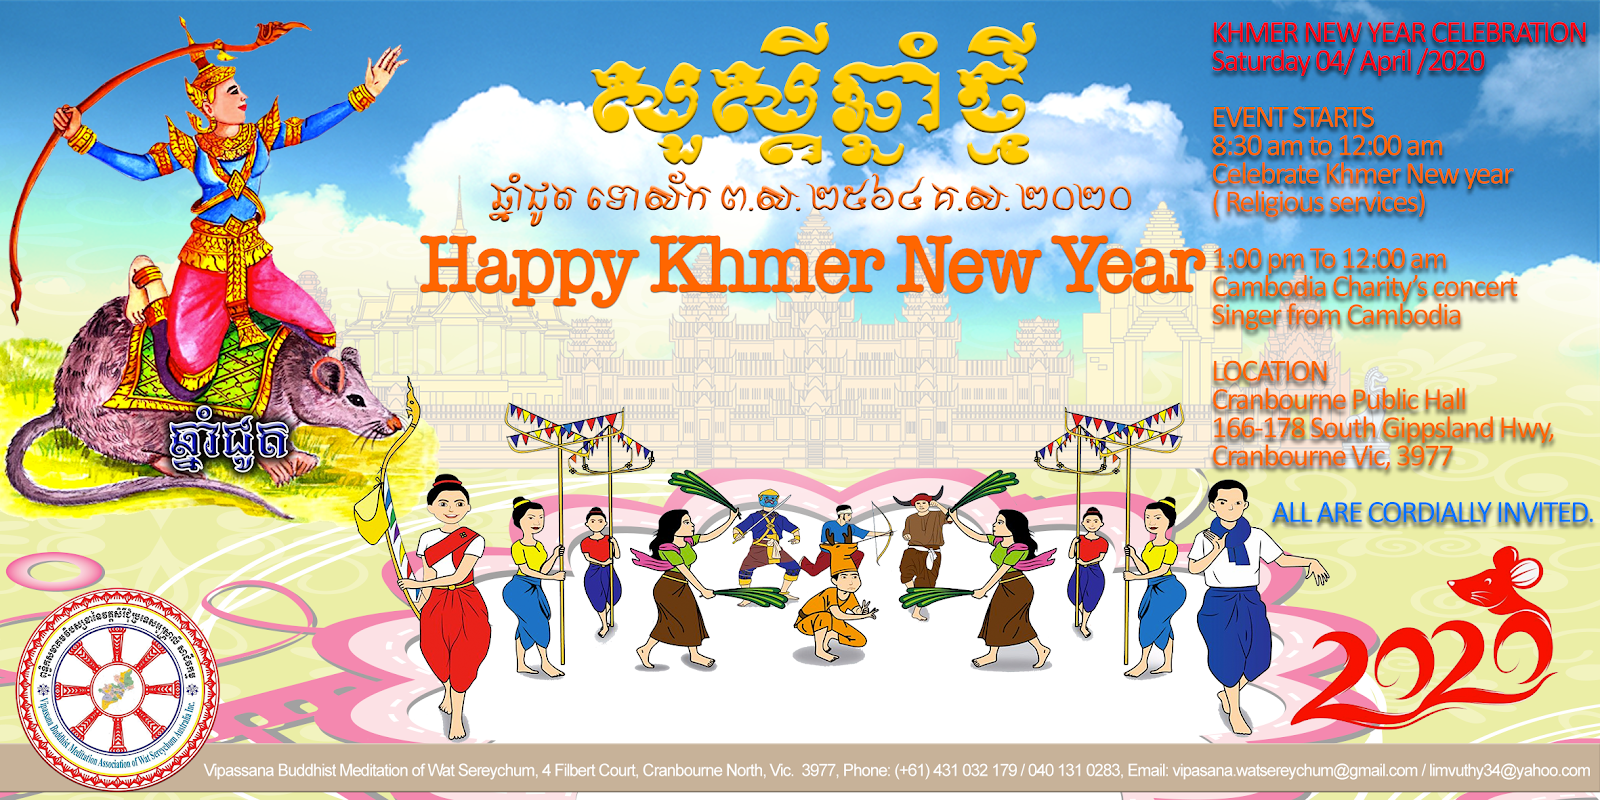 Special Celebration of Khmer New Year 2020